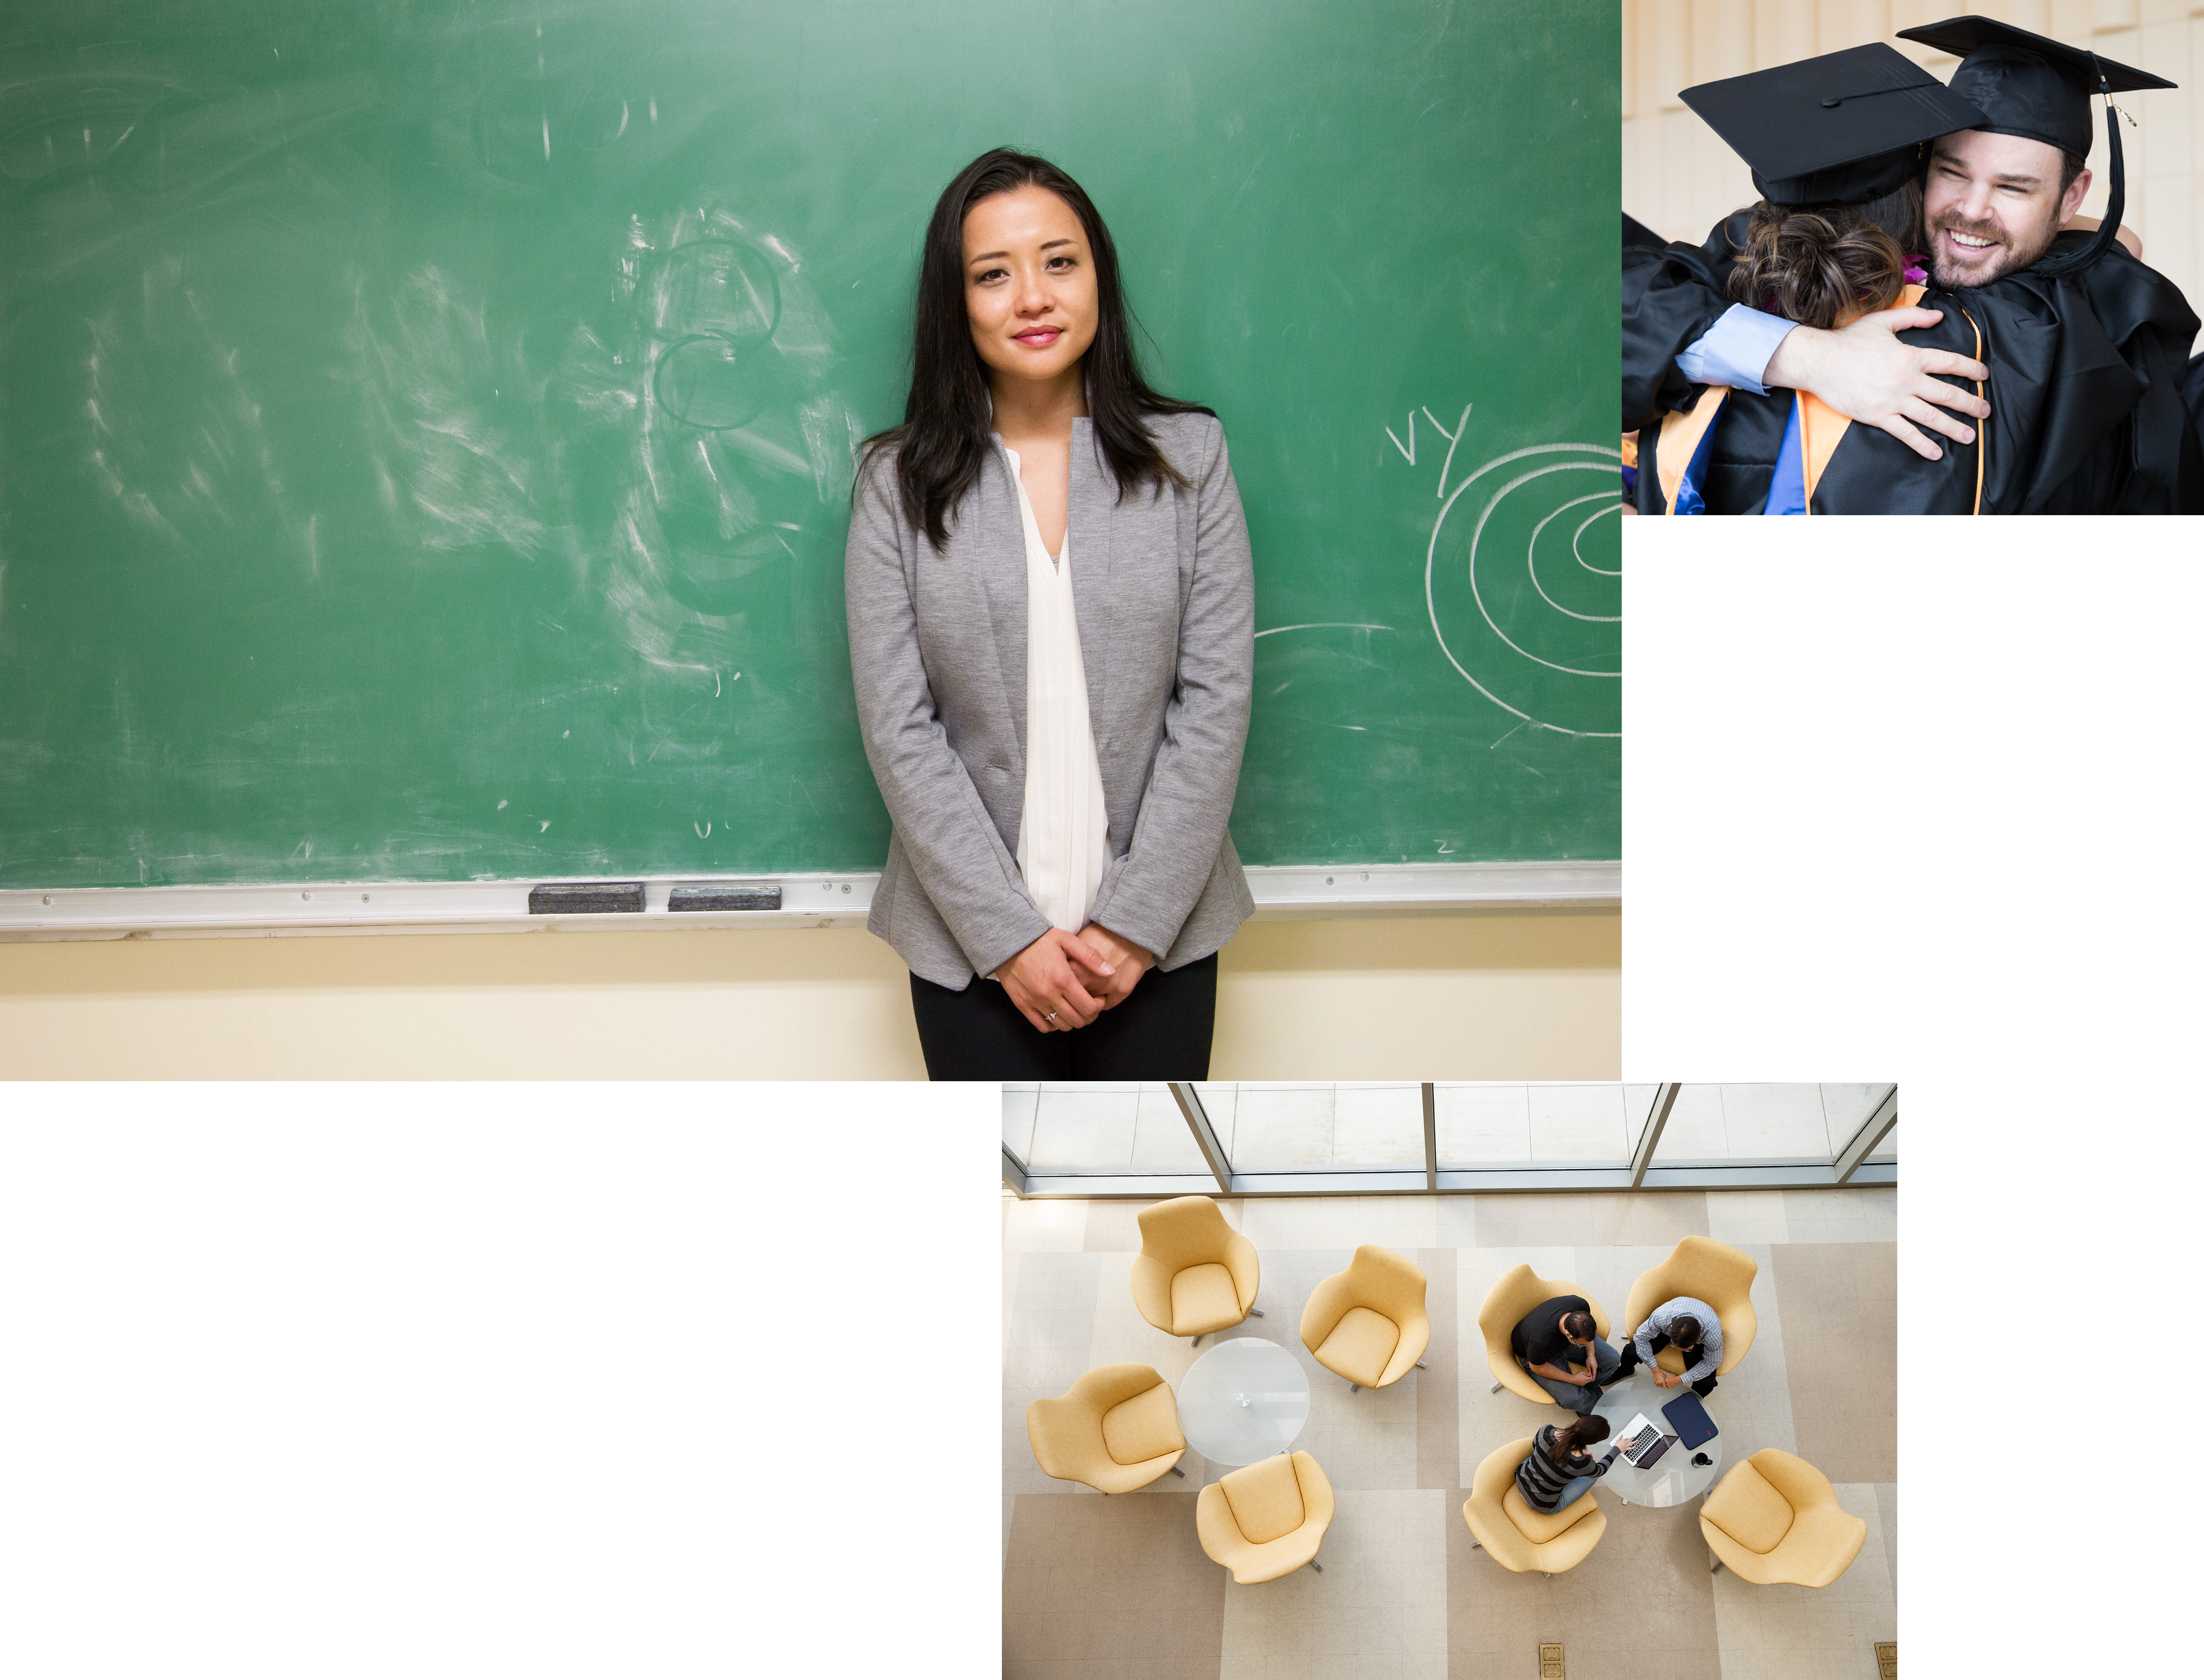 multiple images of students